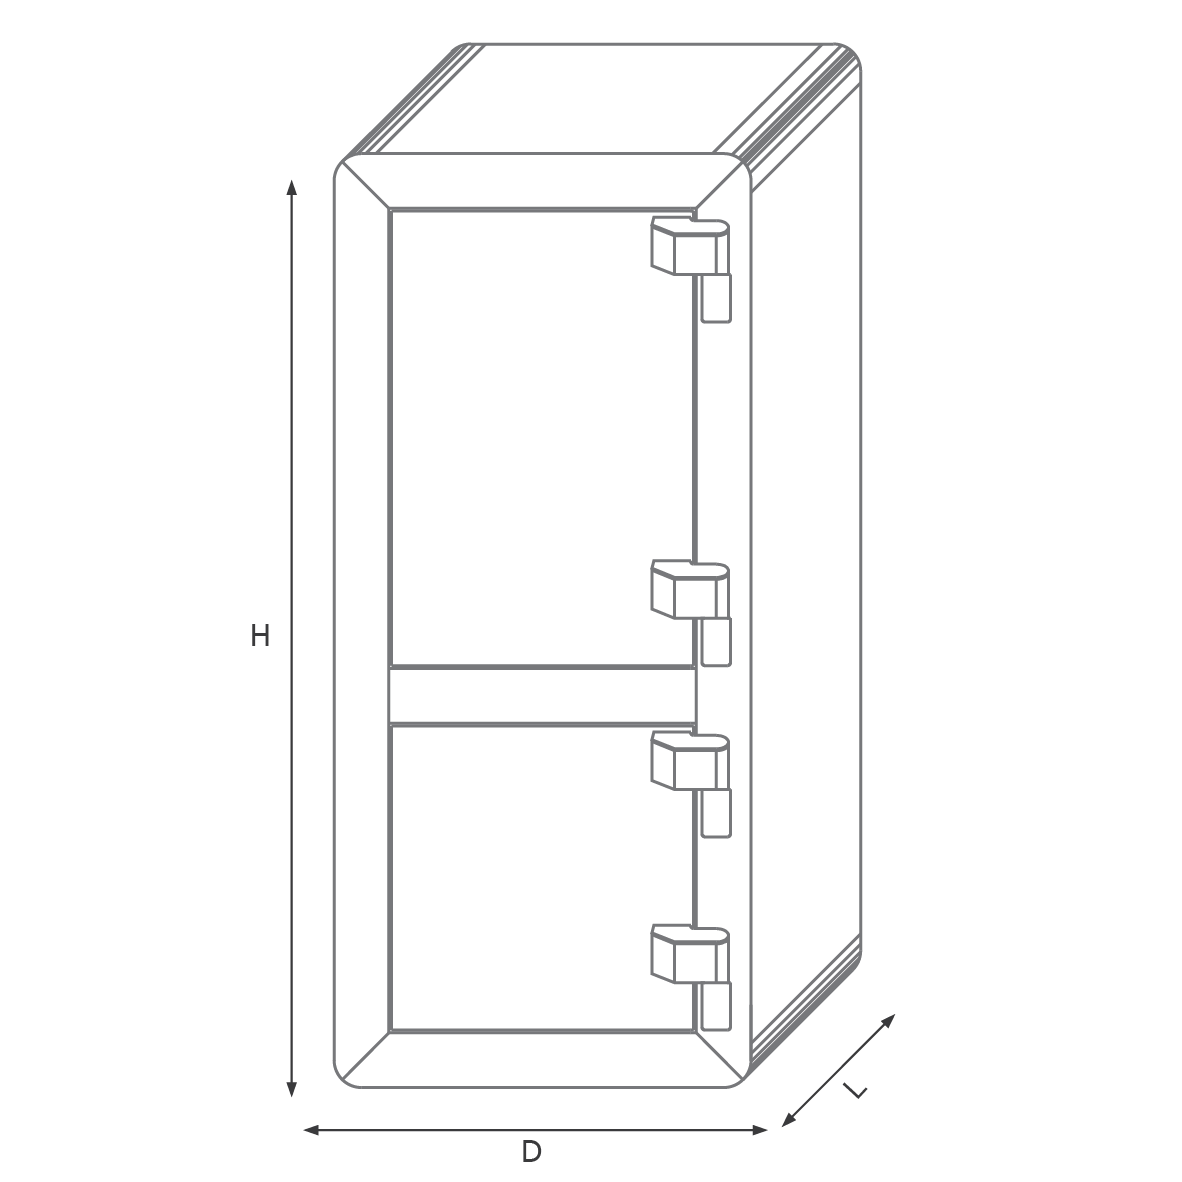 Two-story light safe 550DKR with a mechanical code